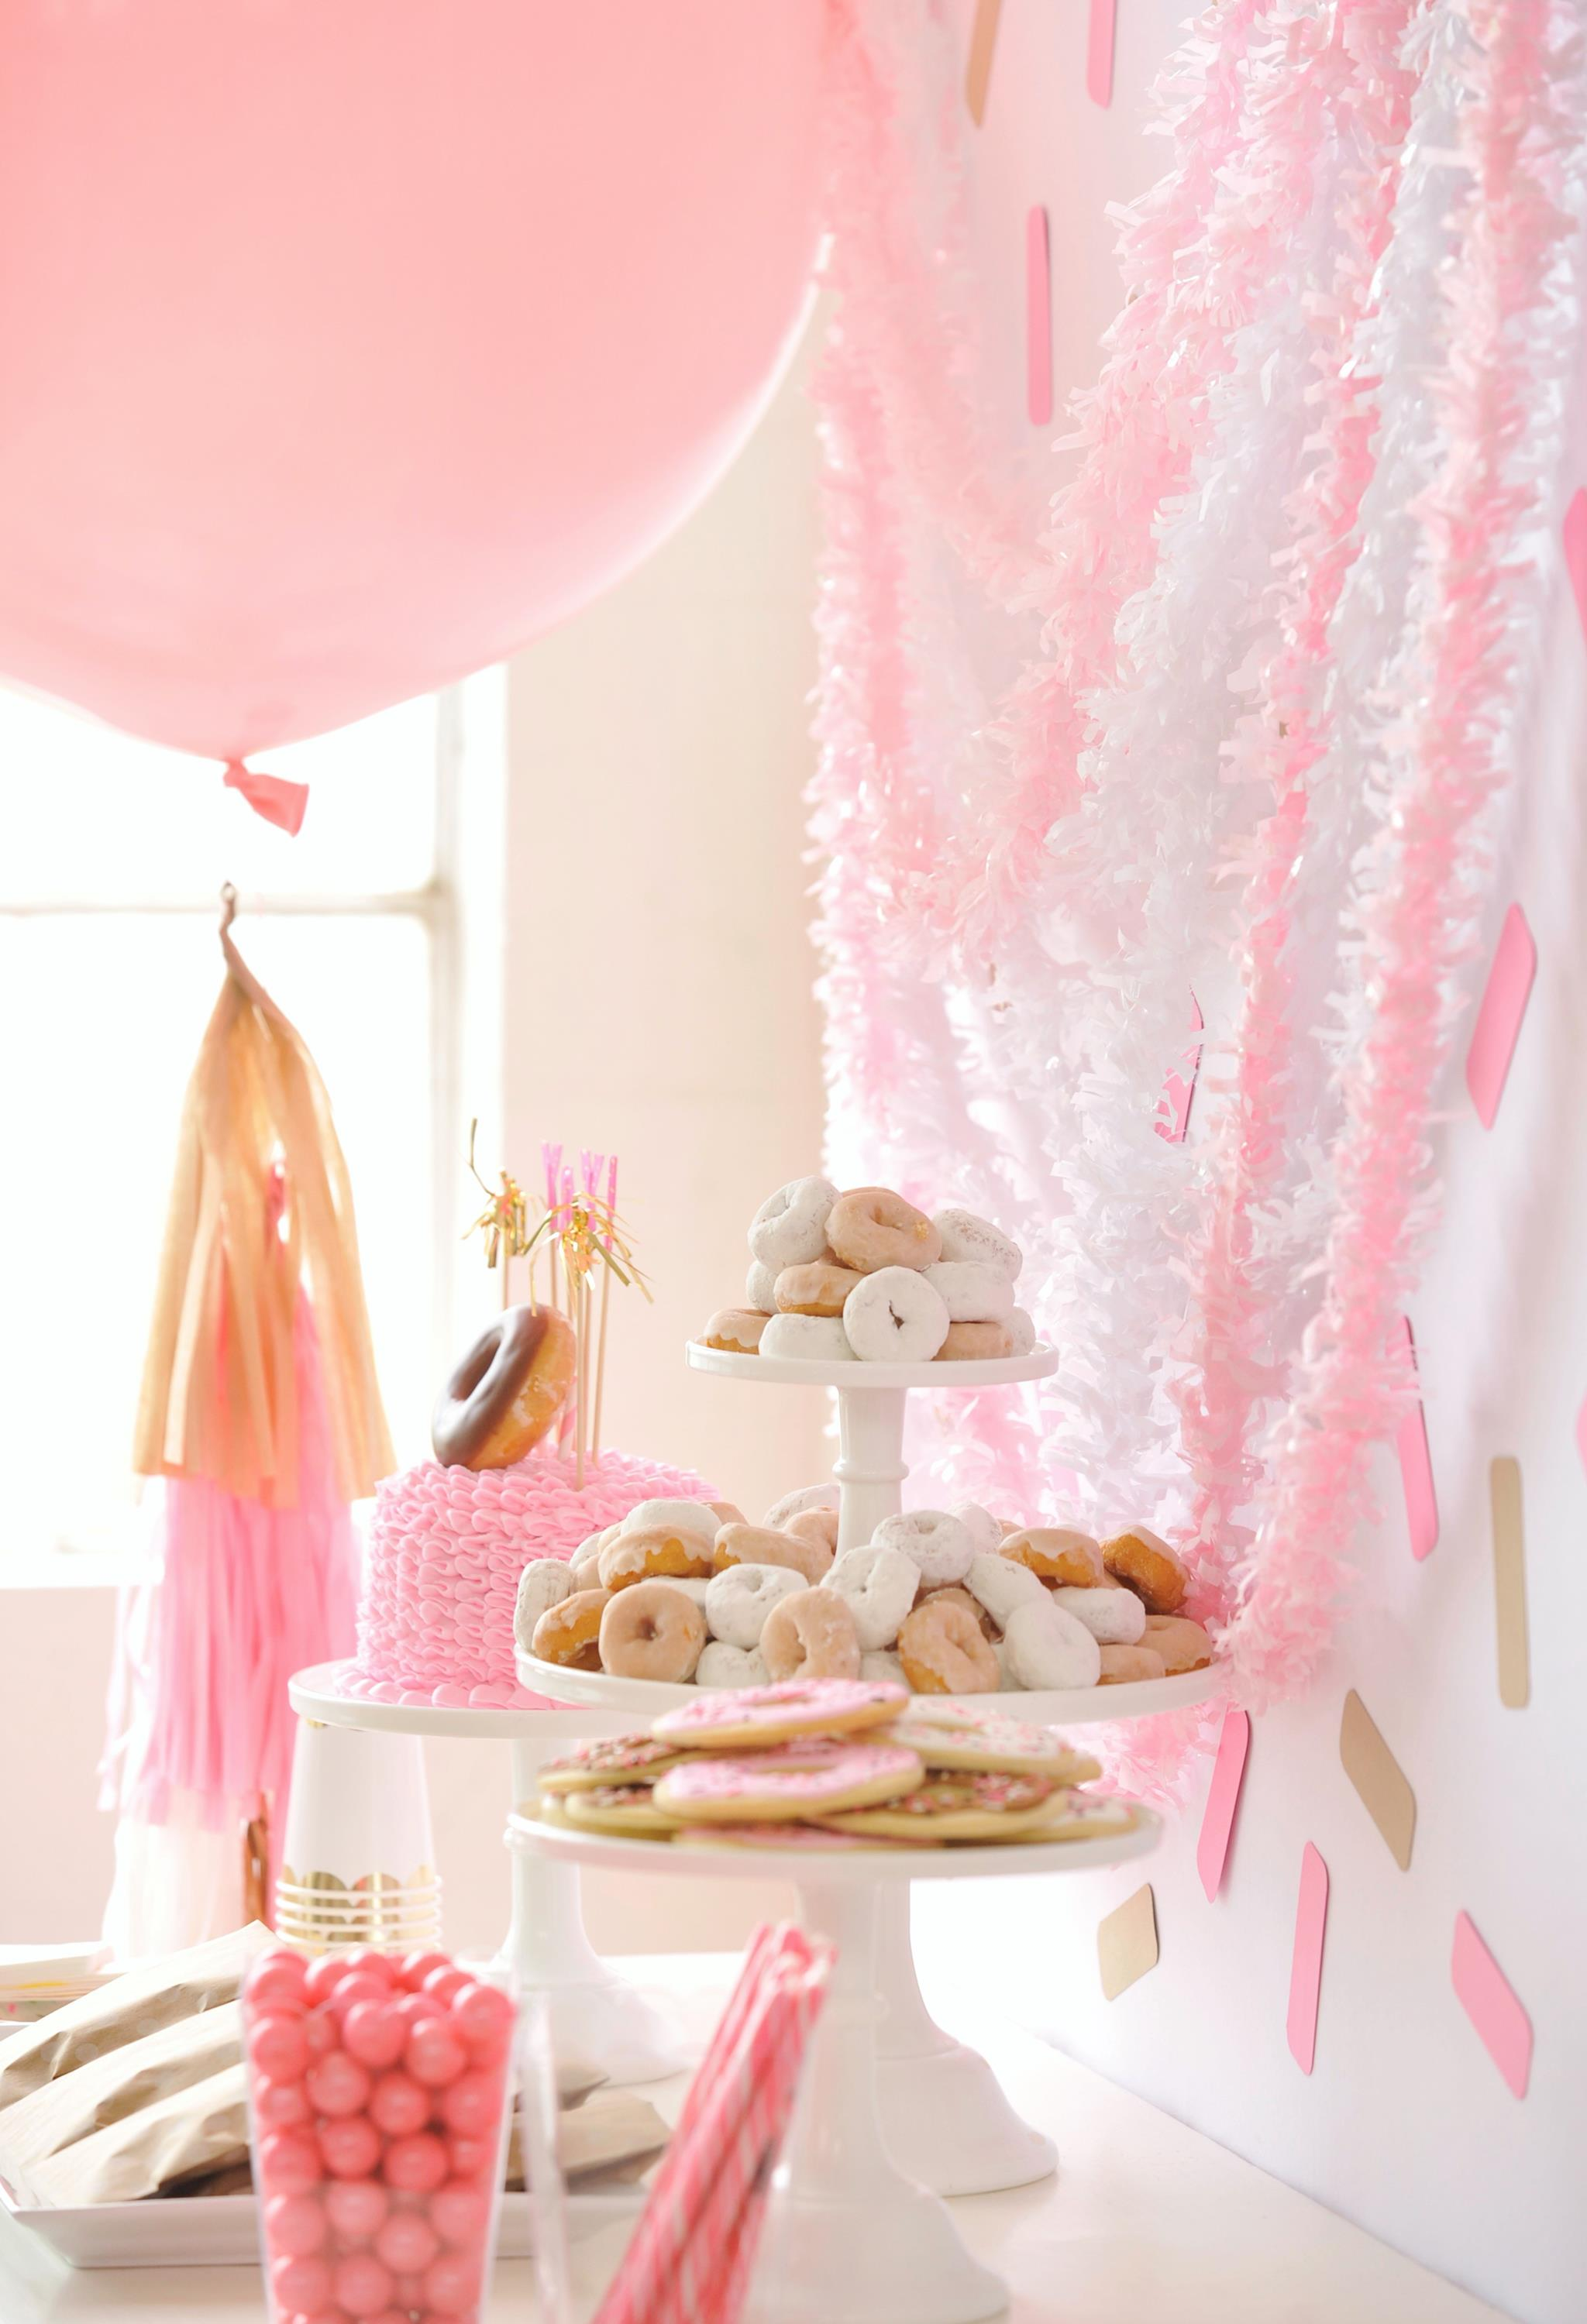 Donut-Themed Kids Party Treats